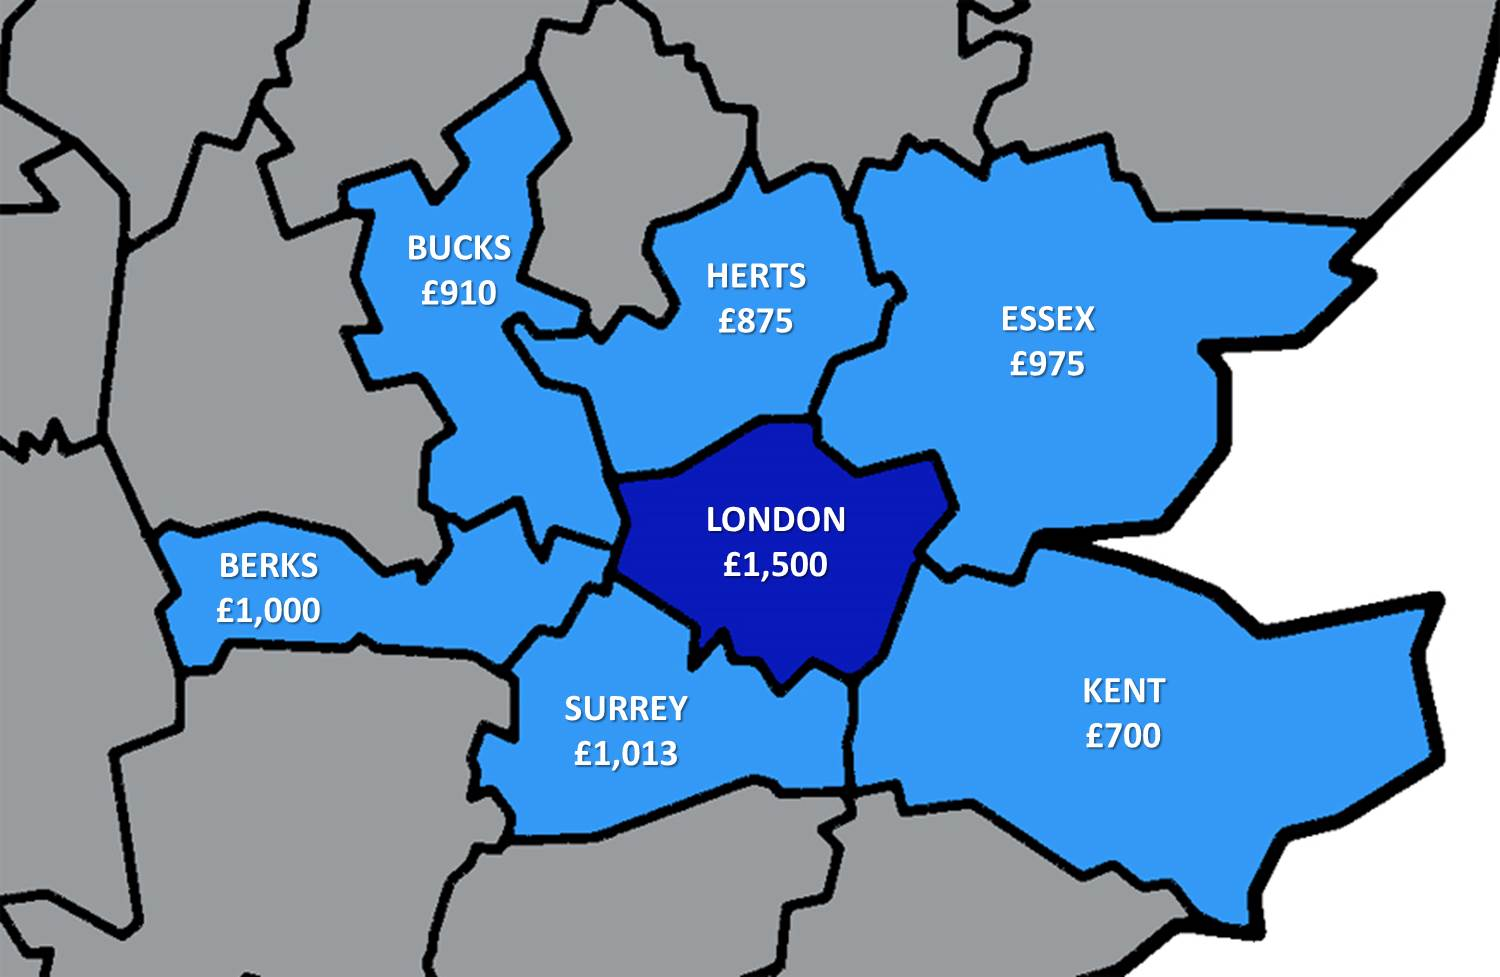 Bethph How Much Does It Cost To Outside London Average S In Counties Around Picture By Abi Brady Used Under Creative Commons